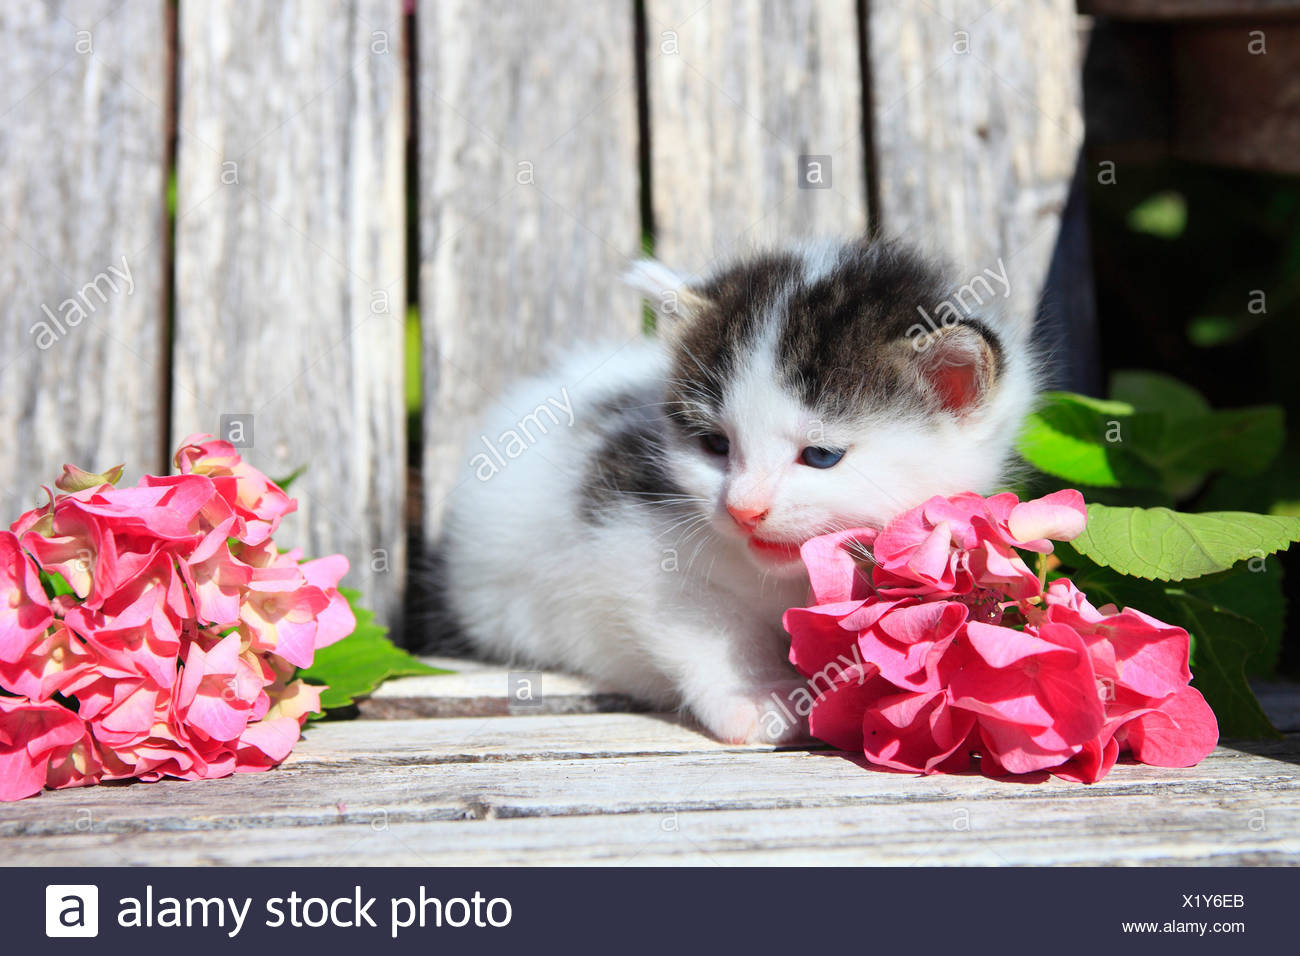 3 weeks, flower, flowers, garden, house, home, Animal, domestic animal, pet, young, cat, kitten, outdoors, outside, one, touched - Stock Image